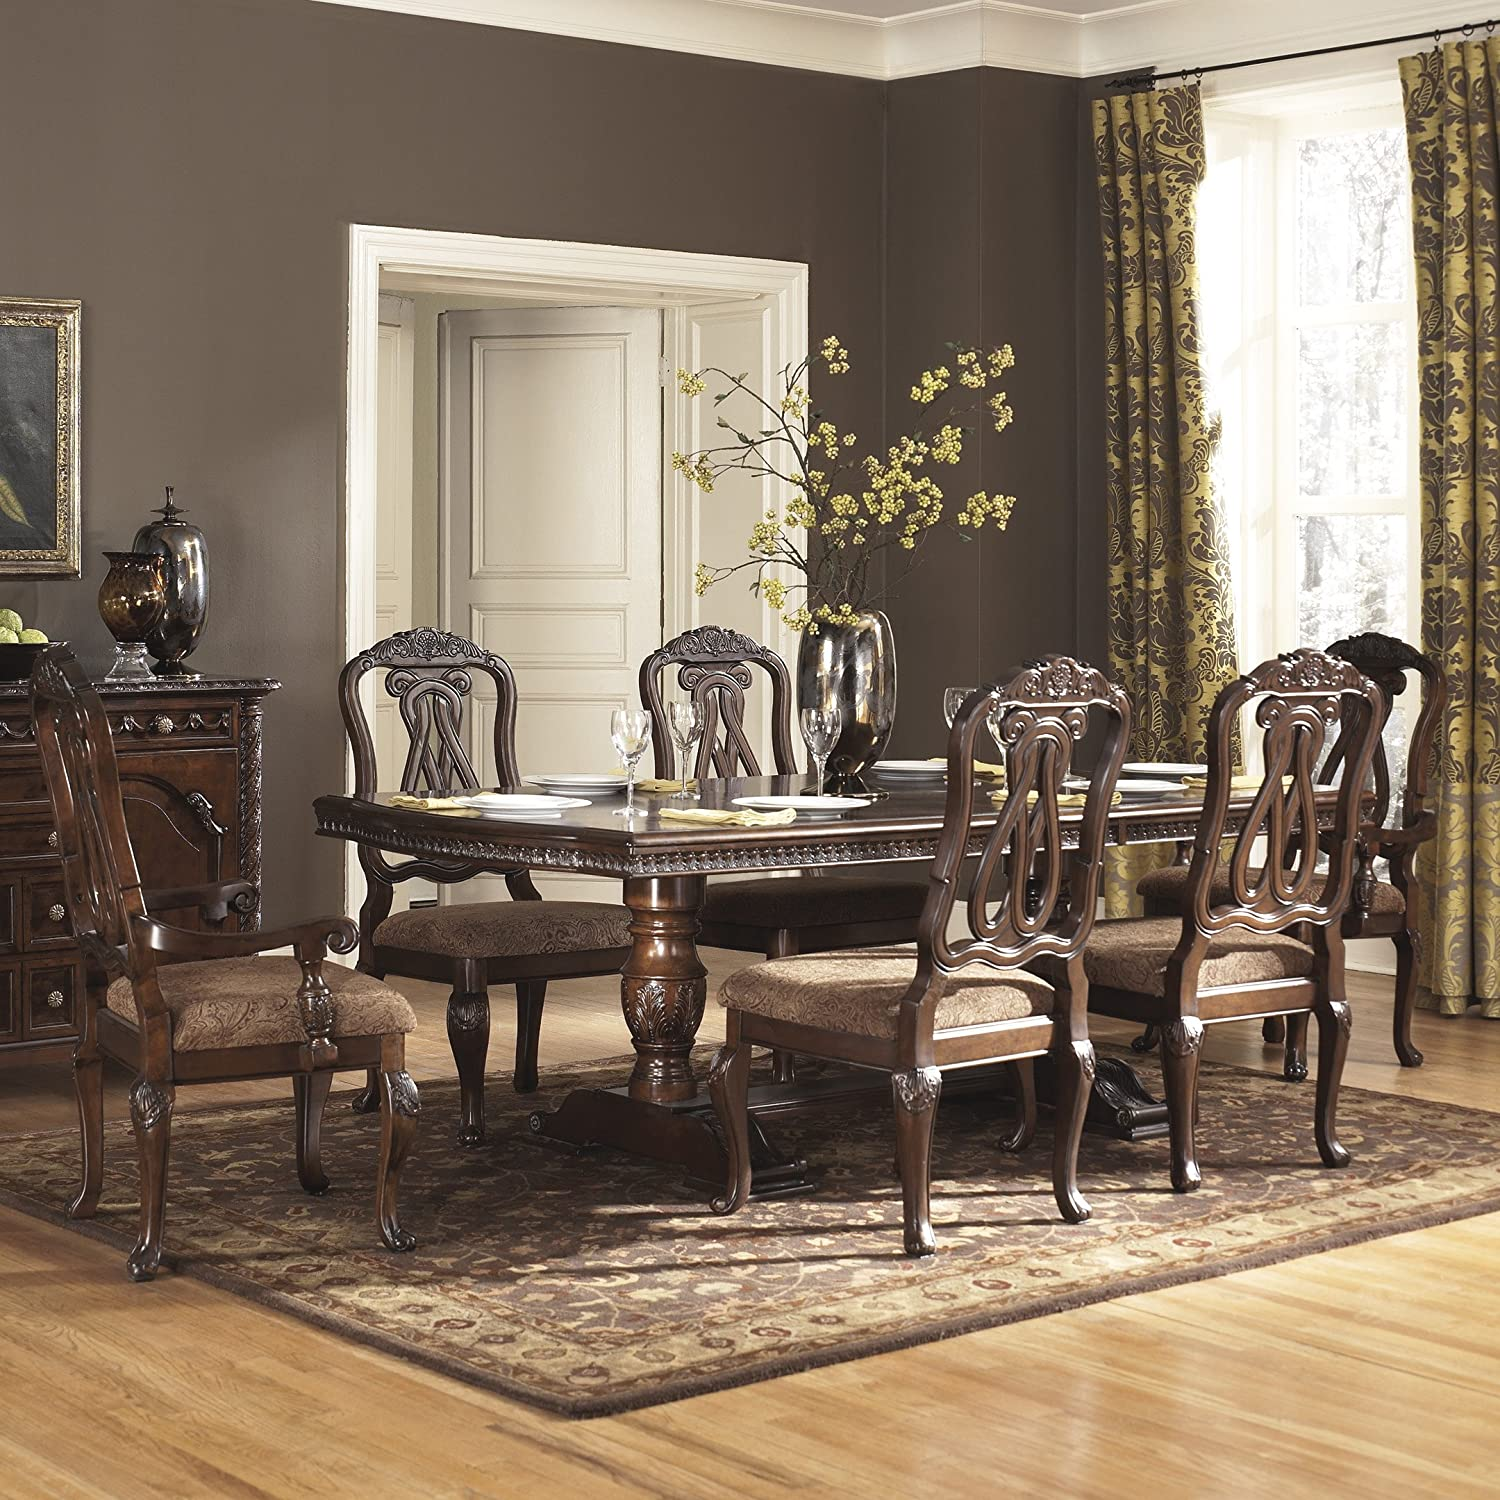 100+ [ Queen Anne Dining Room Furniture ] | Dining Room Sets ...